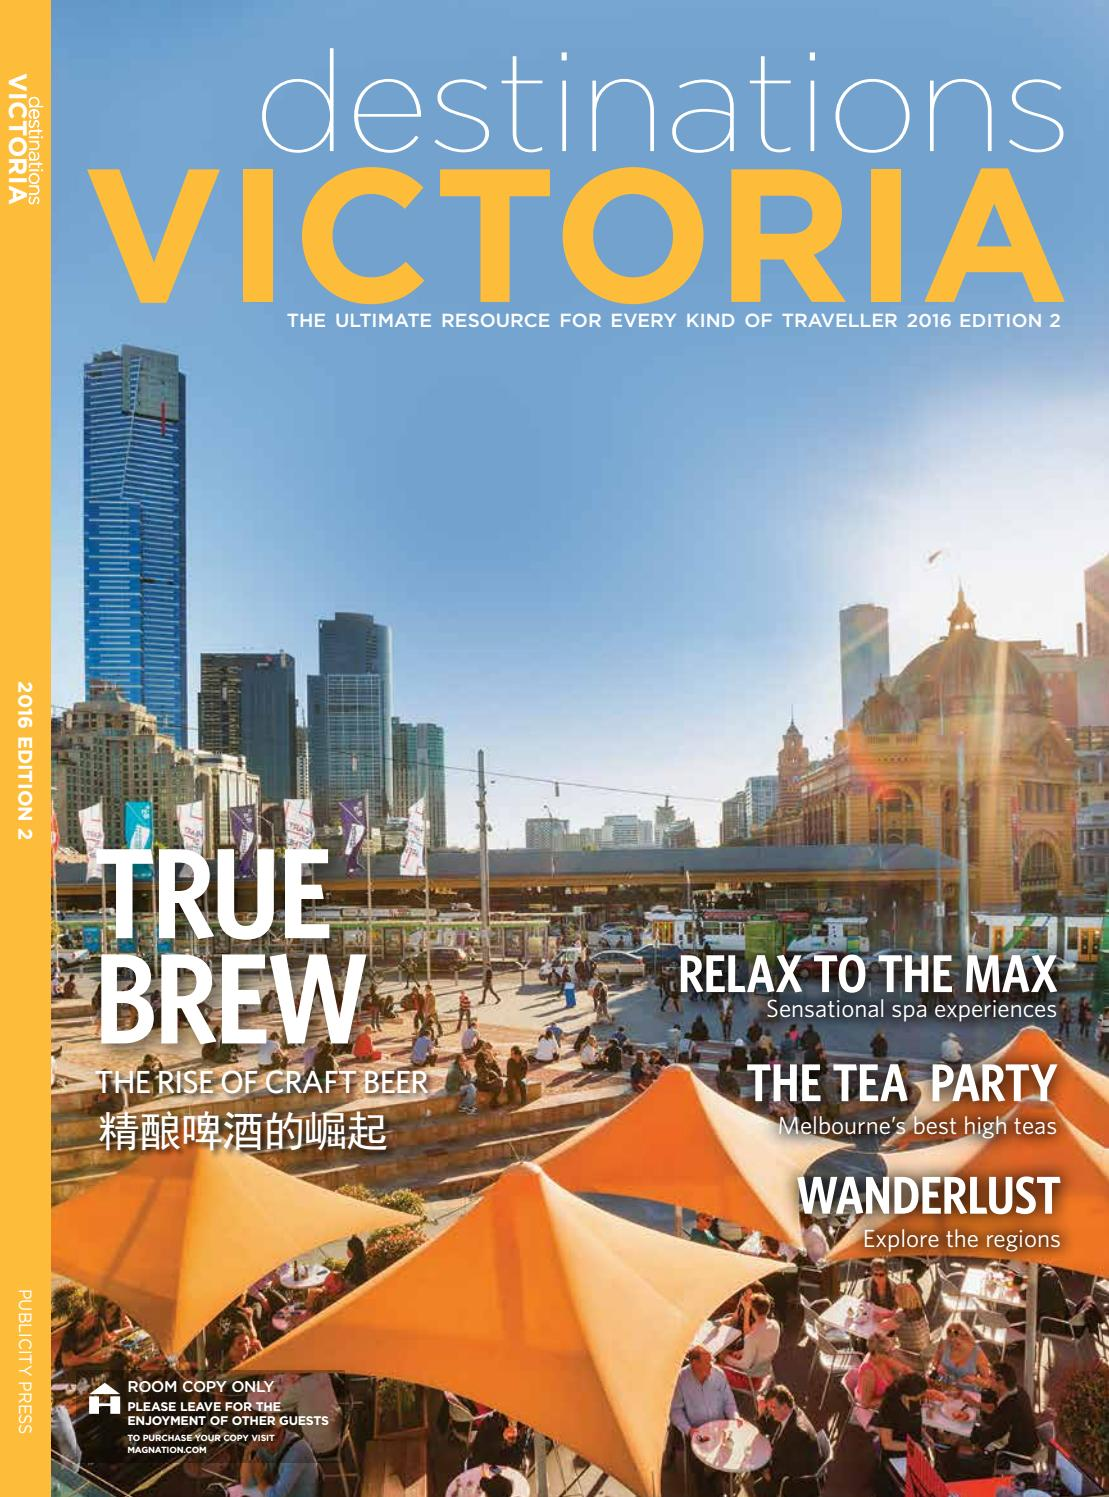 Destinations Victoria 2016 Edition 2 By Publicity Press Issuu Petite Cupcakes Aumy Outer